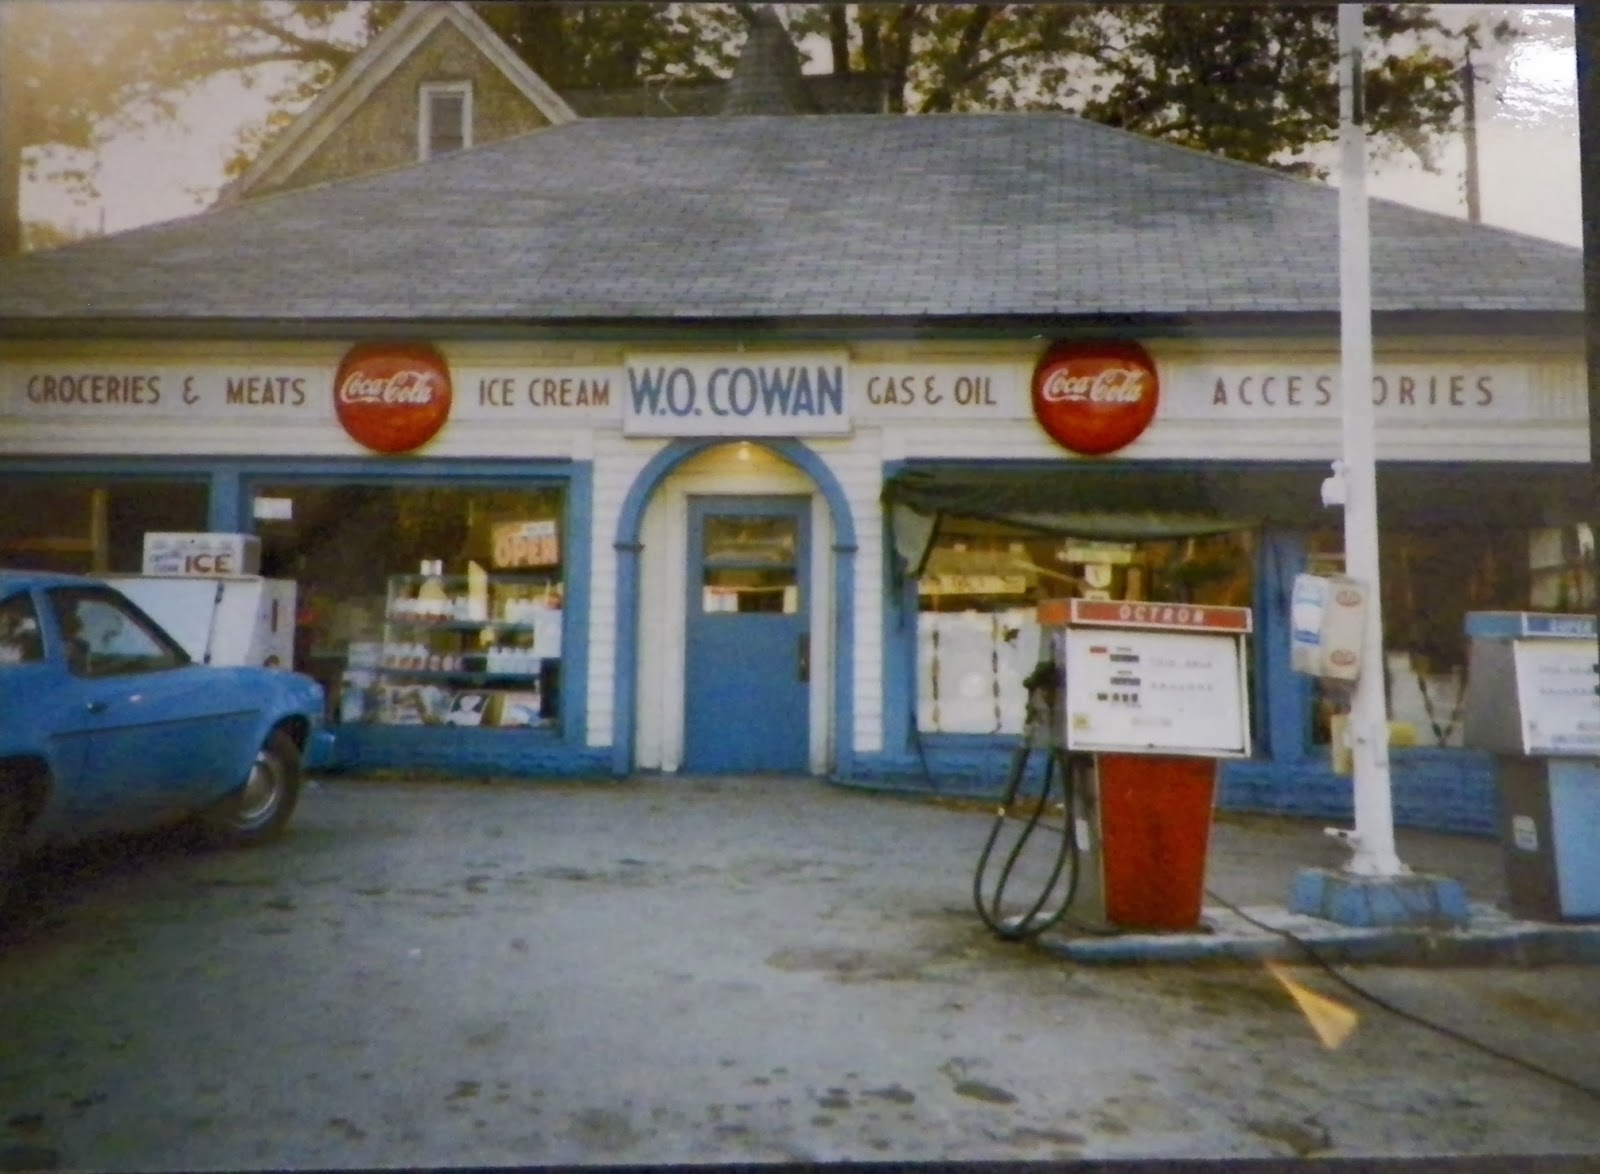 Ohio columbiana county rogers - This Photo Was Taken Sometime In The Mid 1970 S The Gas Pumps Have Been Moved The Sign Over The Door Now Just Says Cowans But The Coke Signs Are Still